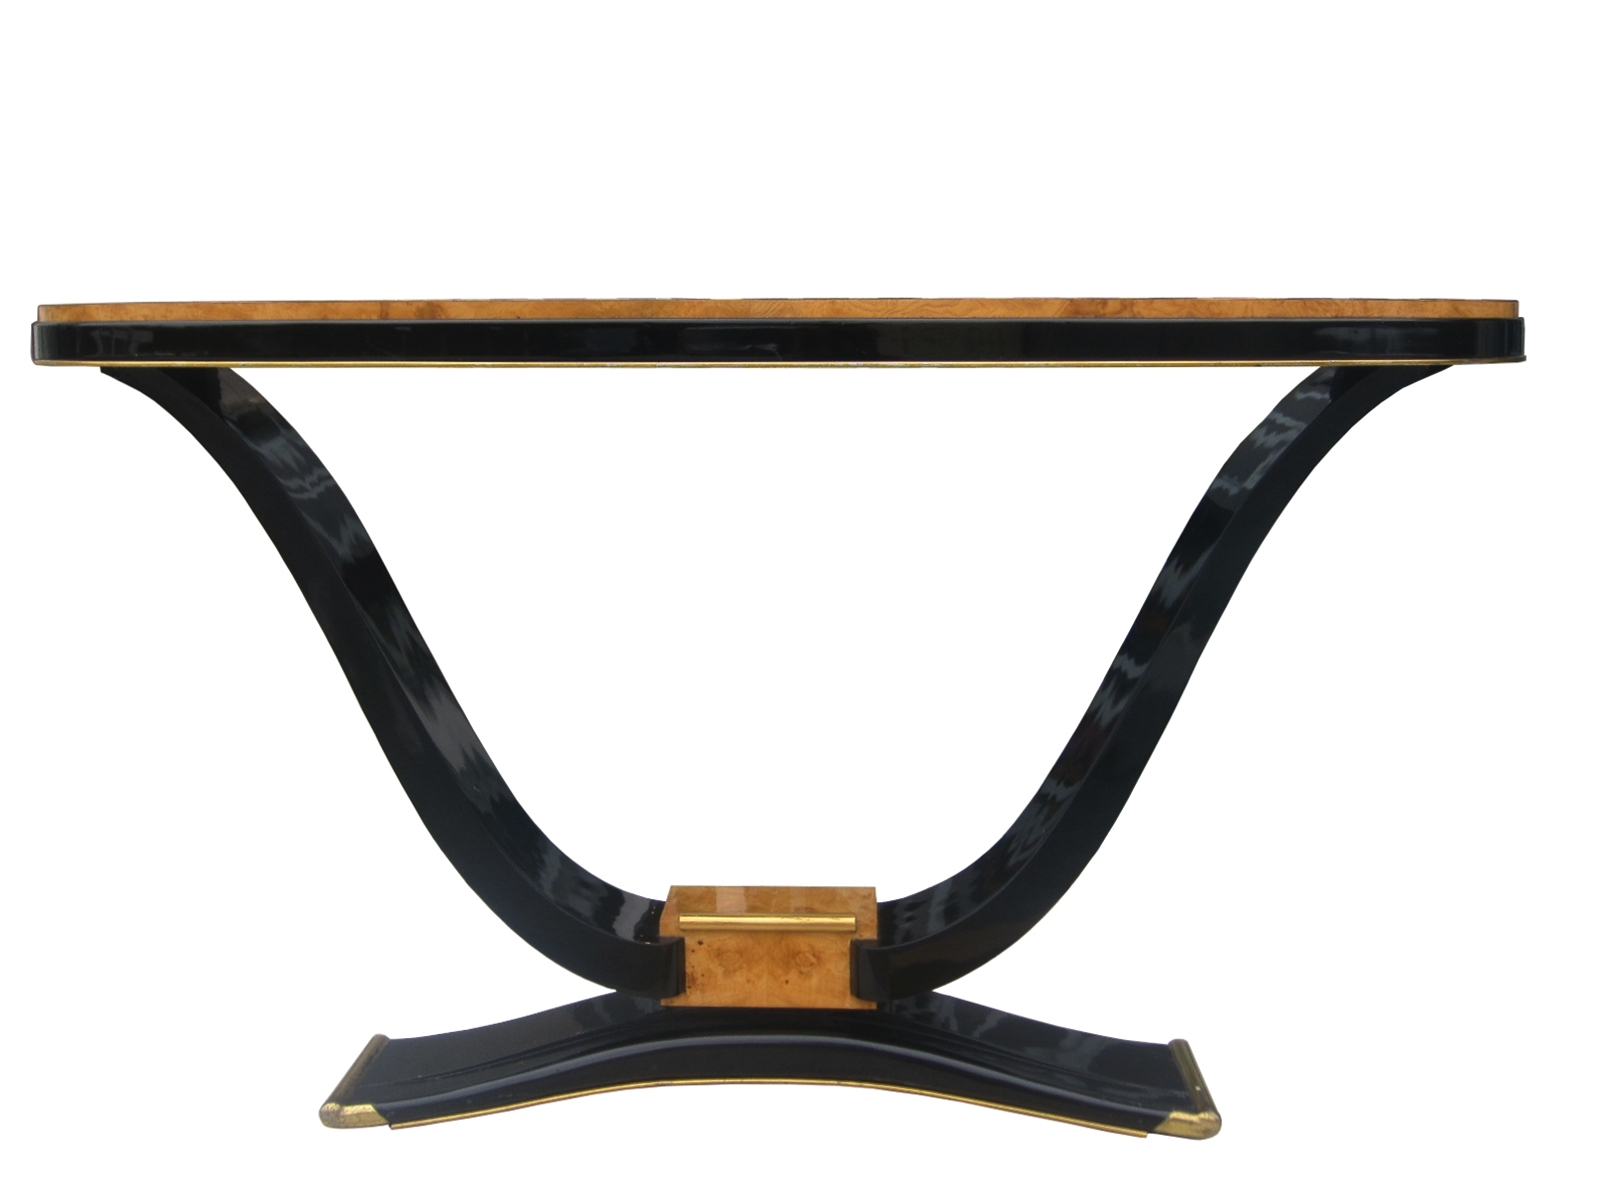 French art deco burl wood black lacquered console table for sale french art deco burl wood black lacquered console table for sale geotapseo Image collections